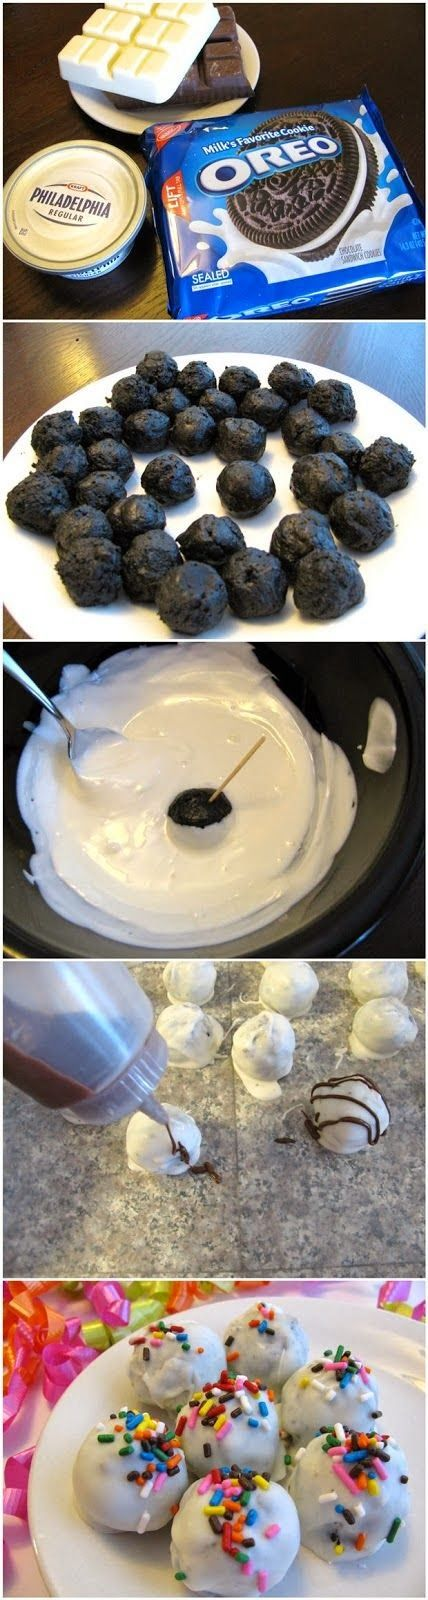 How To Oreo Balls: Try making with colored chocolate from AC Moore for holidays or football games!